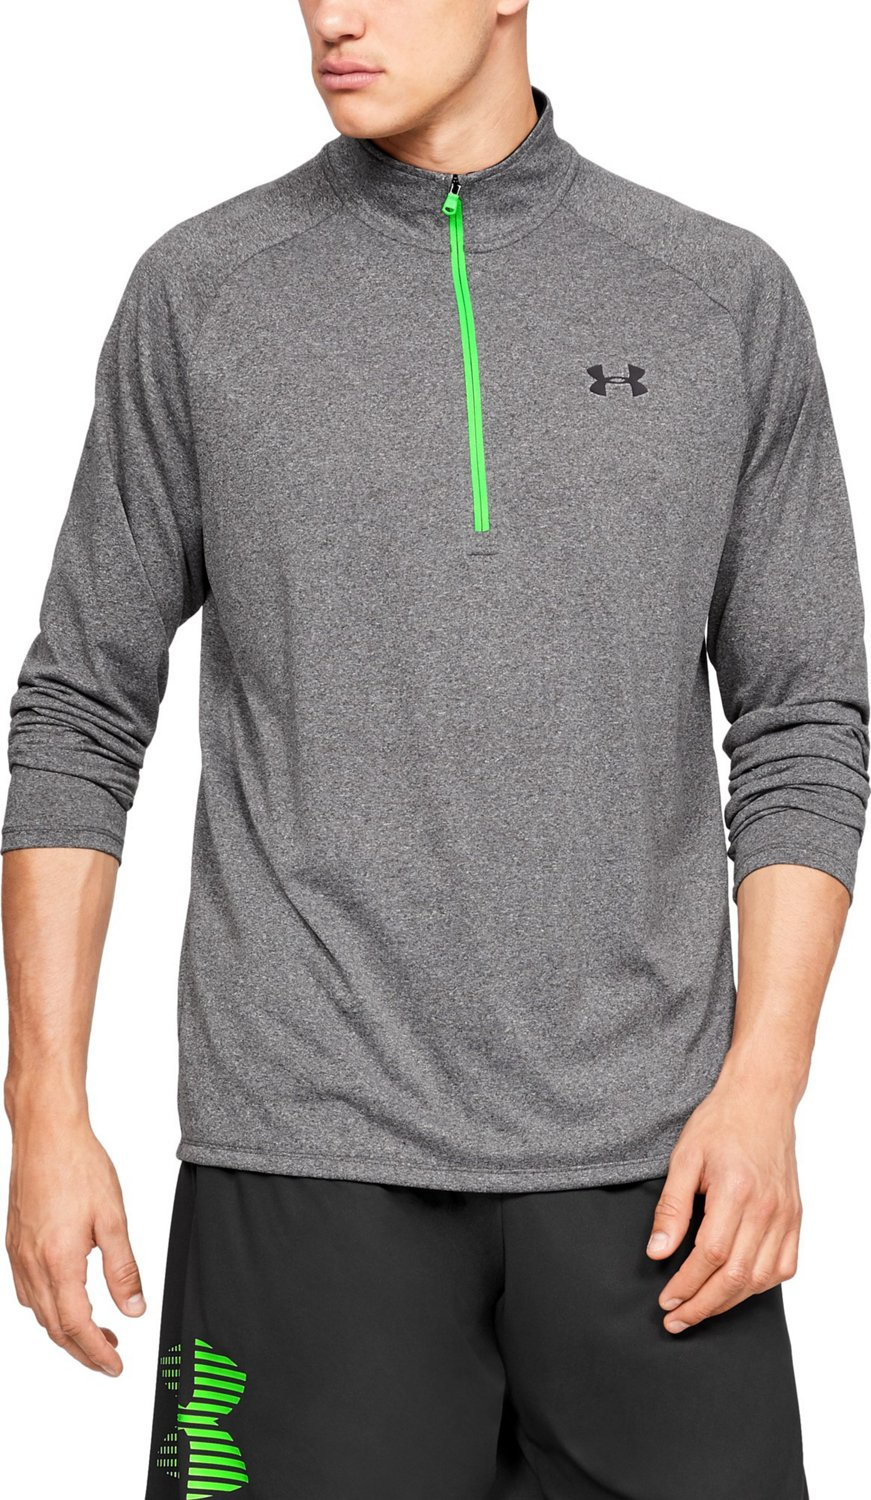 7db5f268d Display product reviews for Under Armour Men's Tech 1/2 Zip Warmup Top